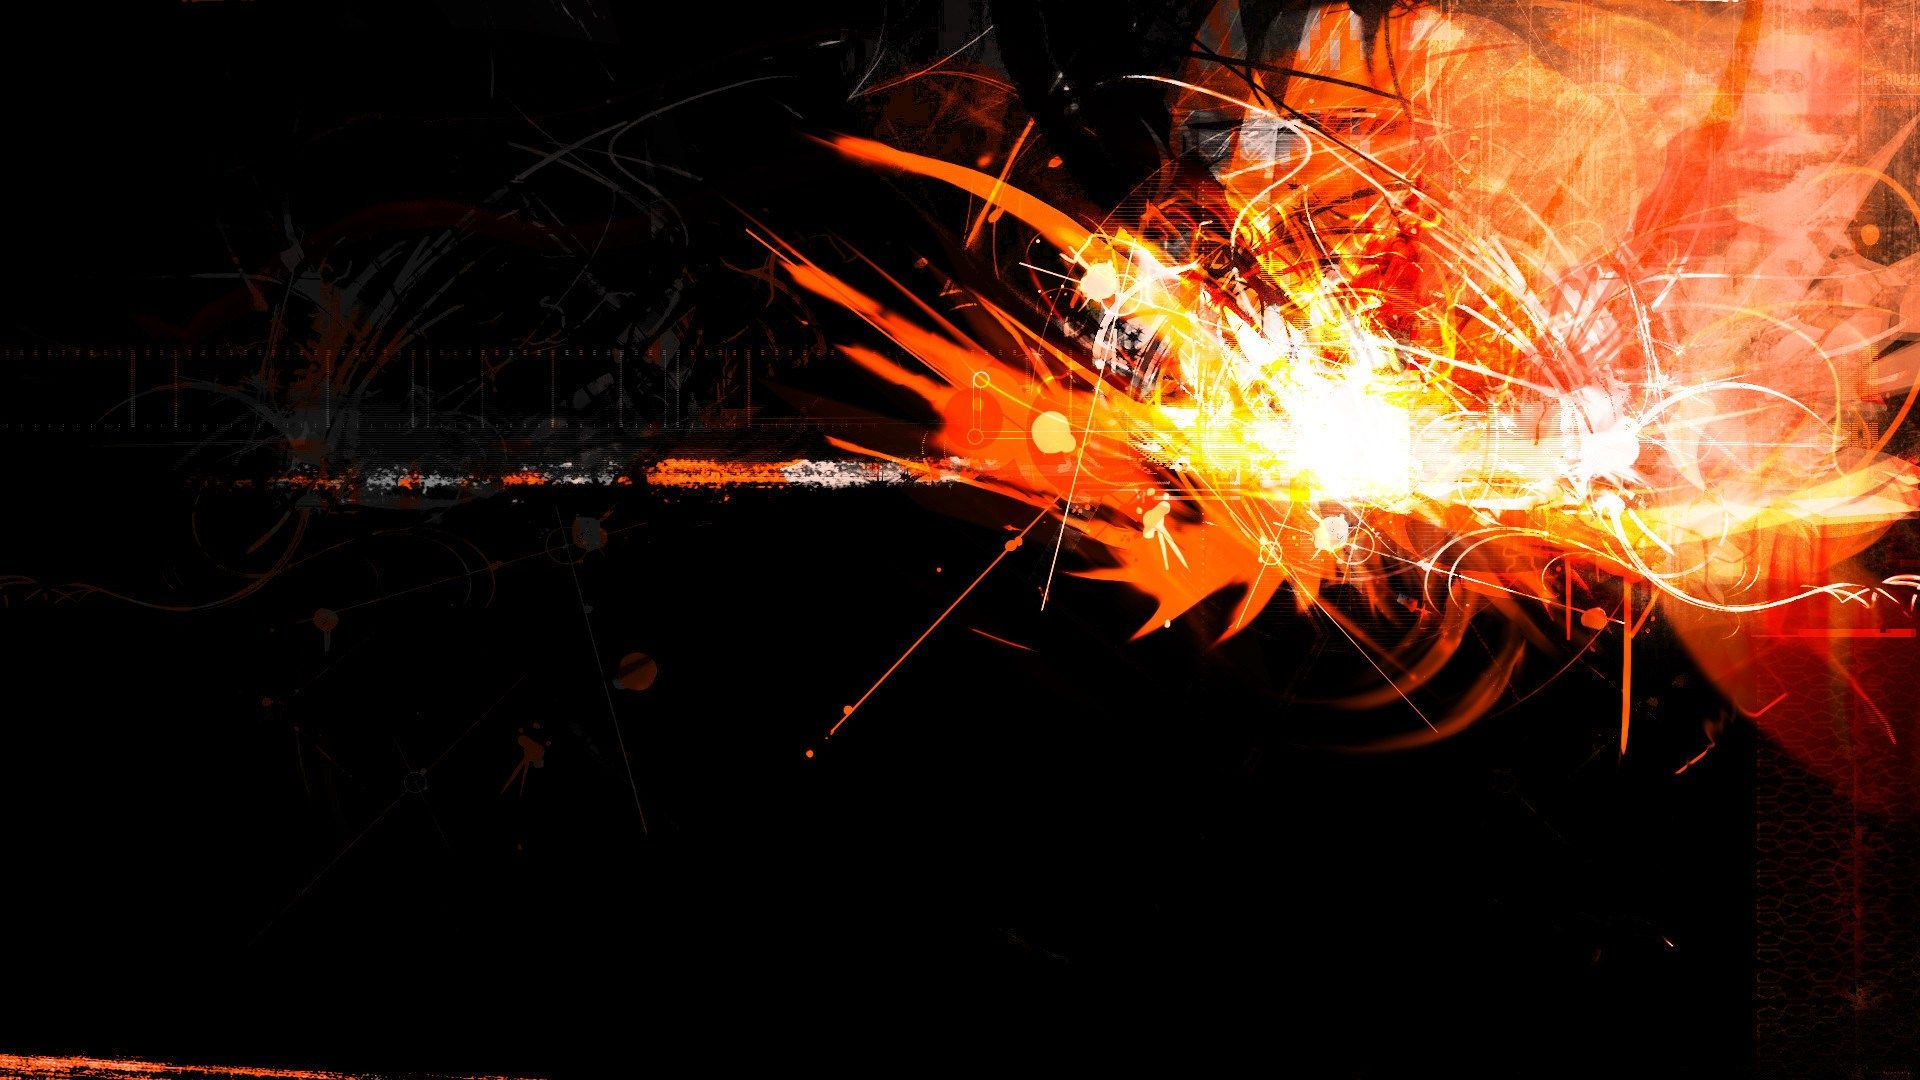 free images hd abstract wallpapers